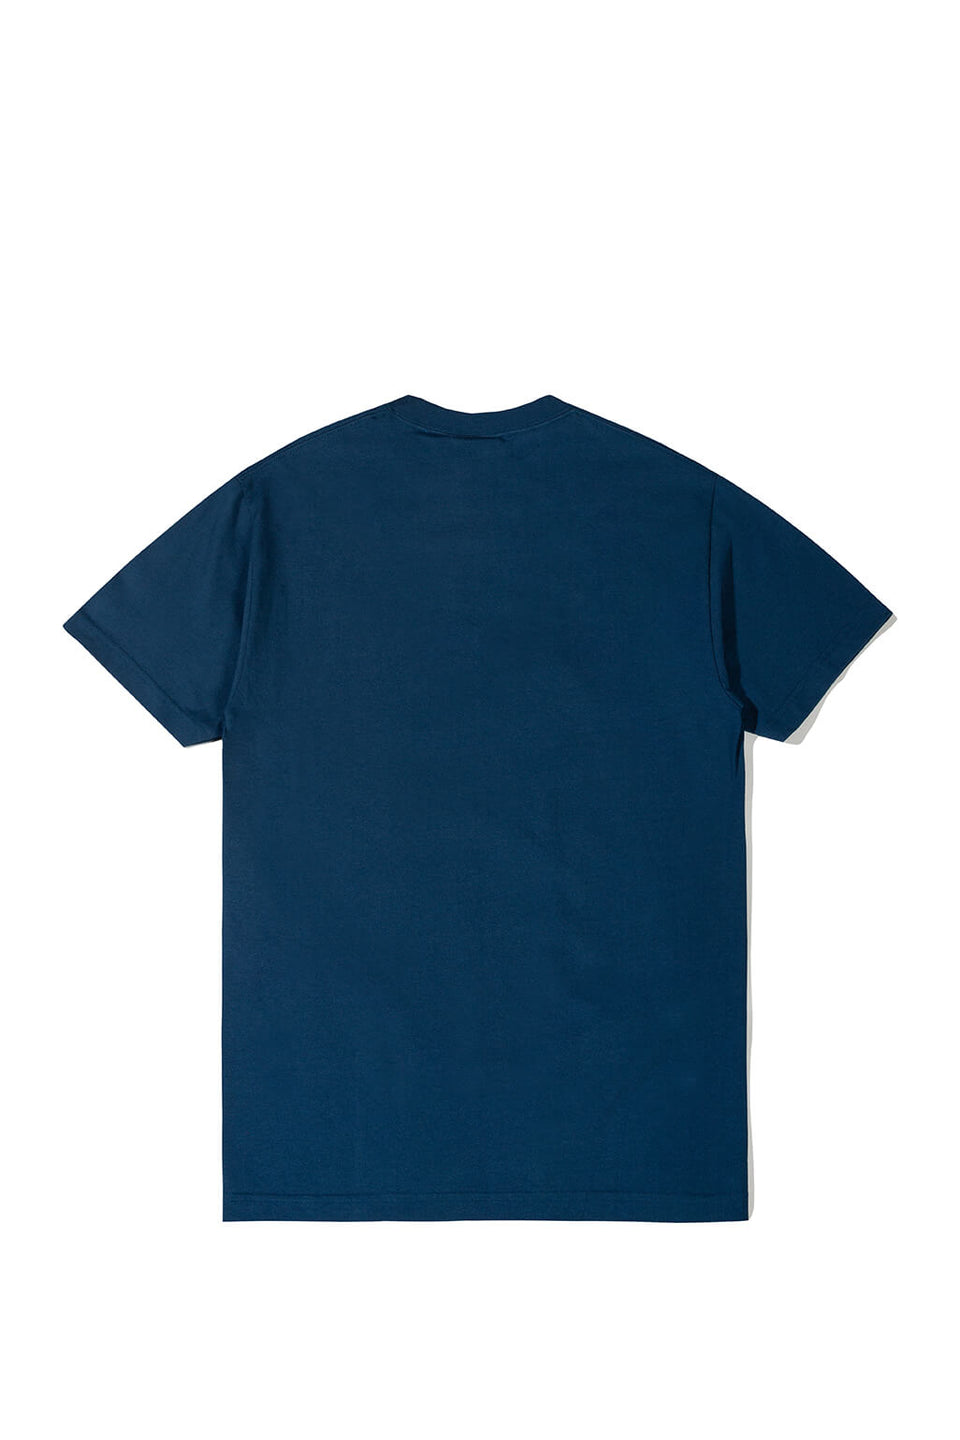 The Hundreds Shadows T-Shirt Harbor Blue